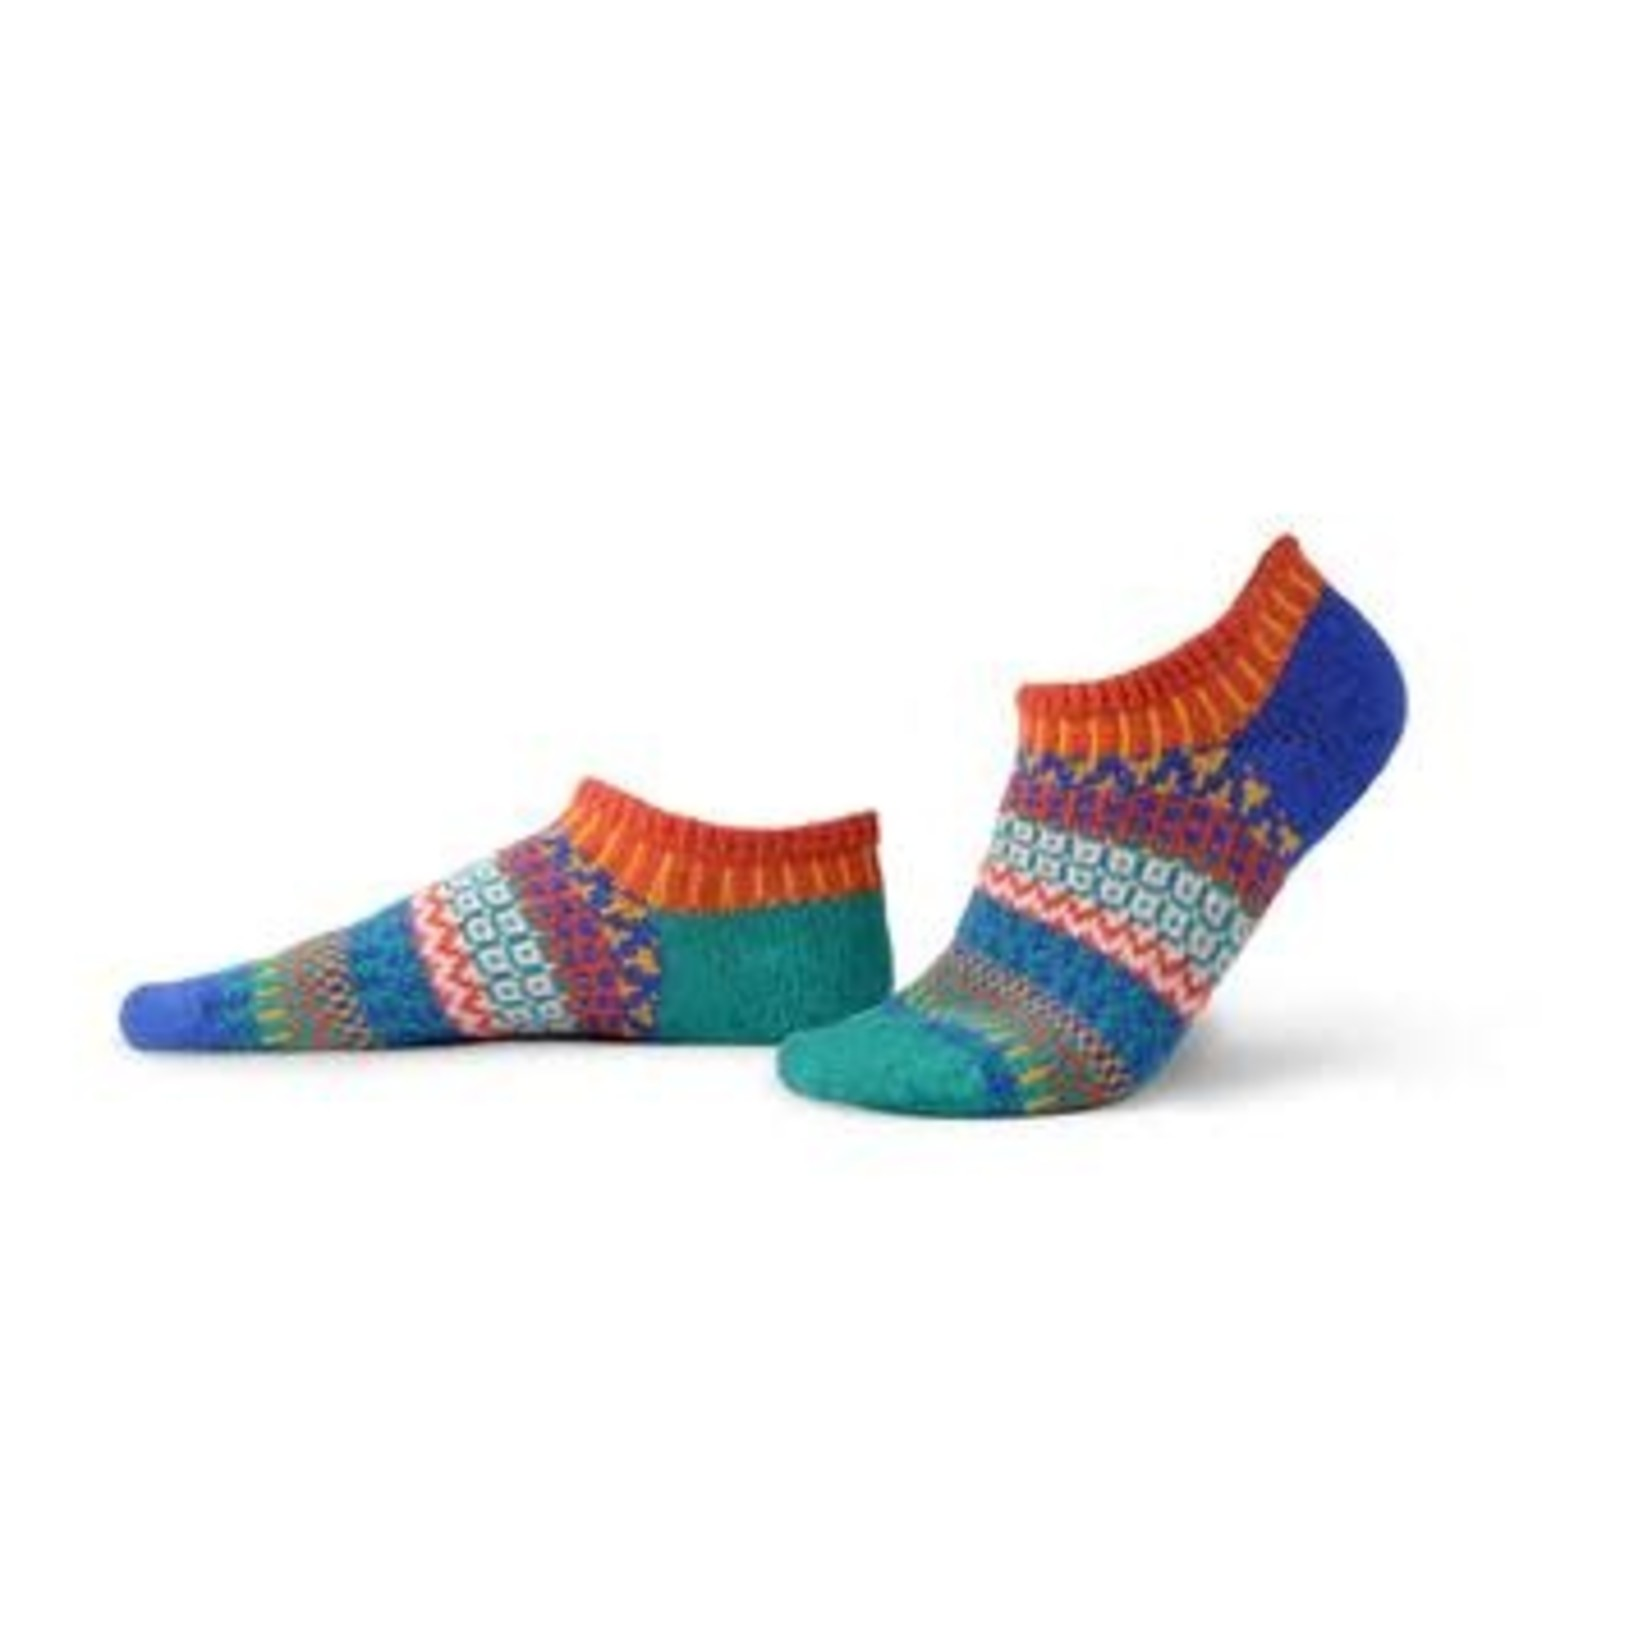 Solmates Solmate Socks Adult Ankle